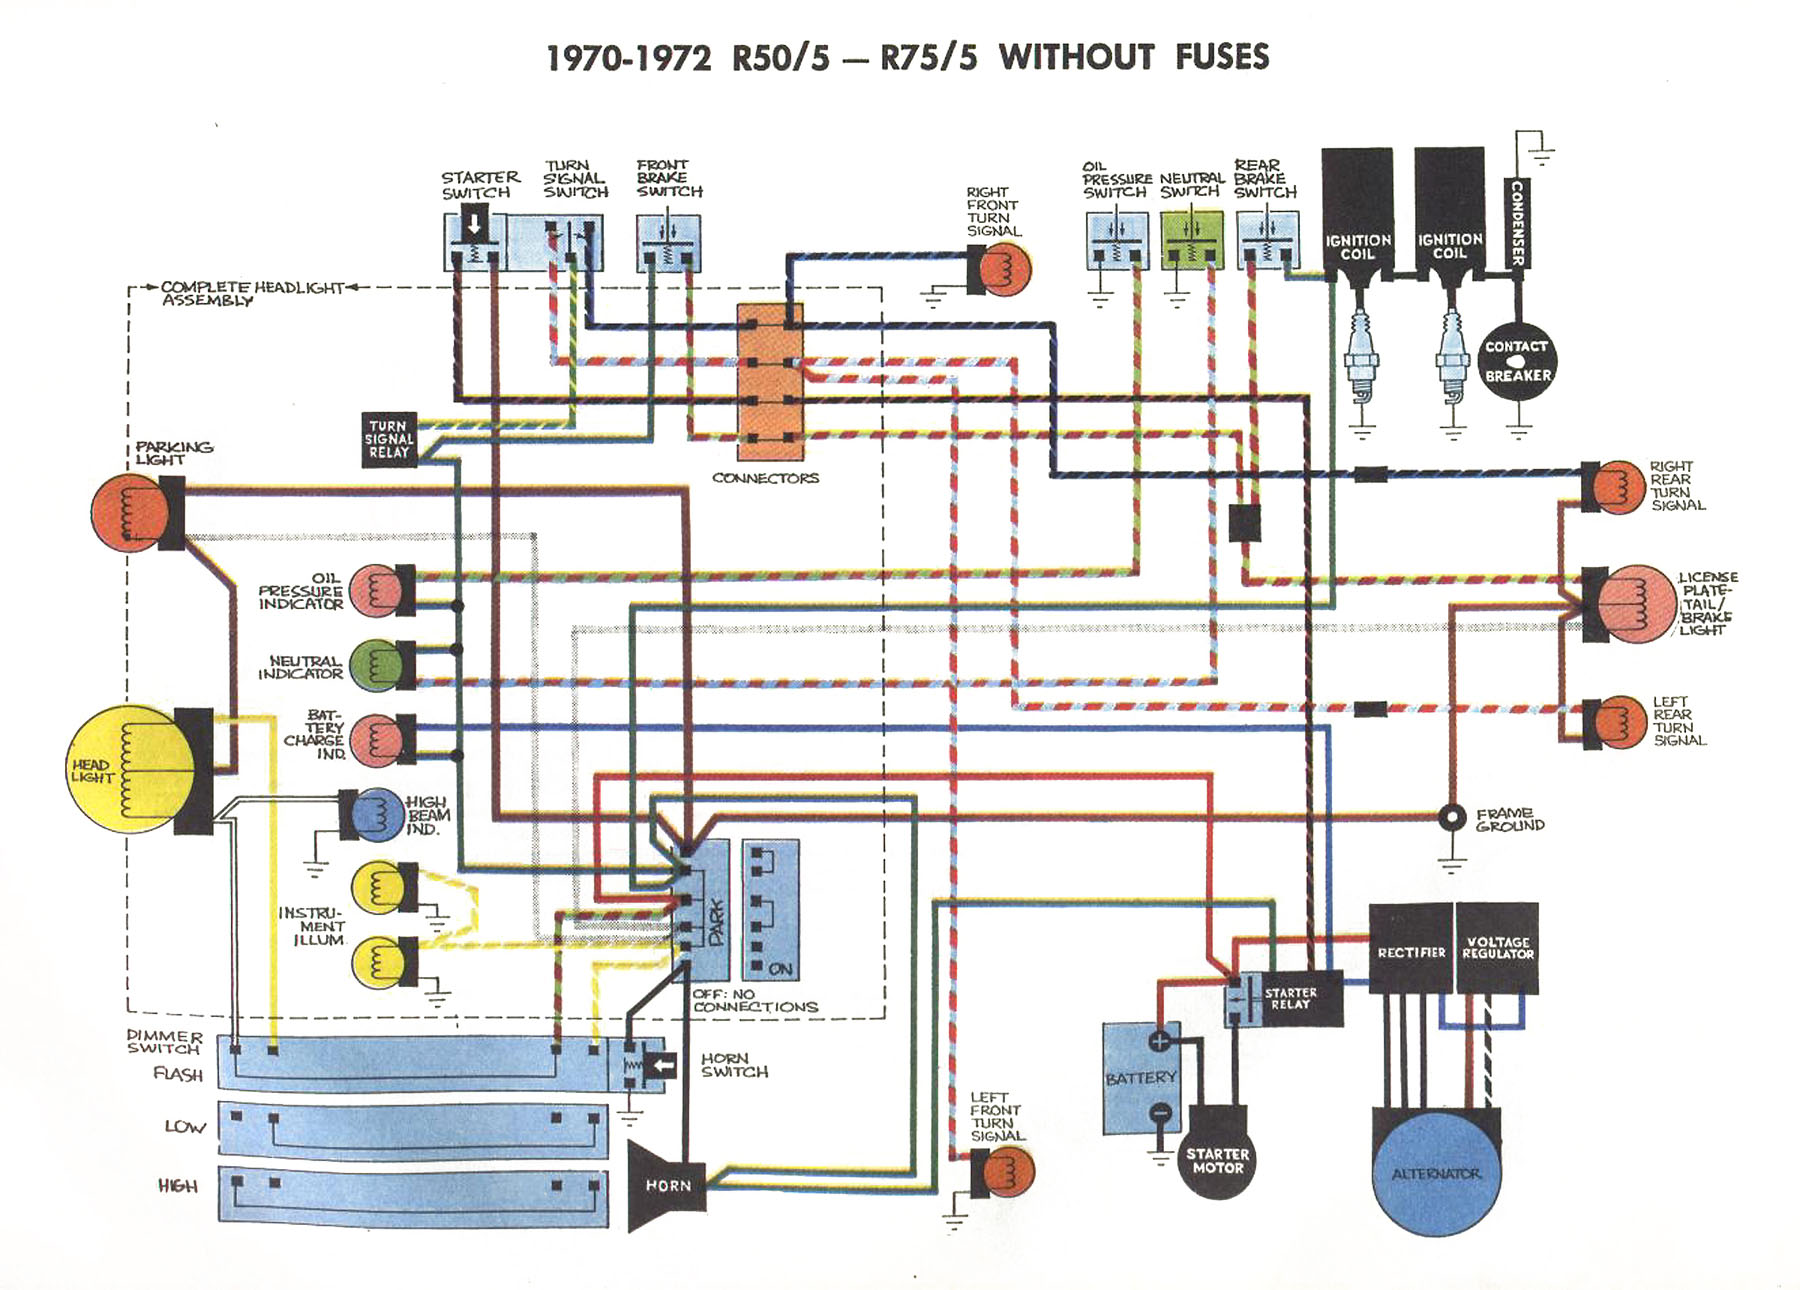 5_unfused_schematic 5 united articles wiring diagrams bmw r100rs gauge wiring diagram at sewacar.co